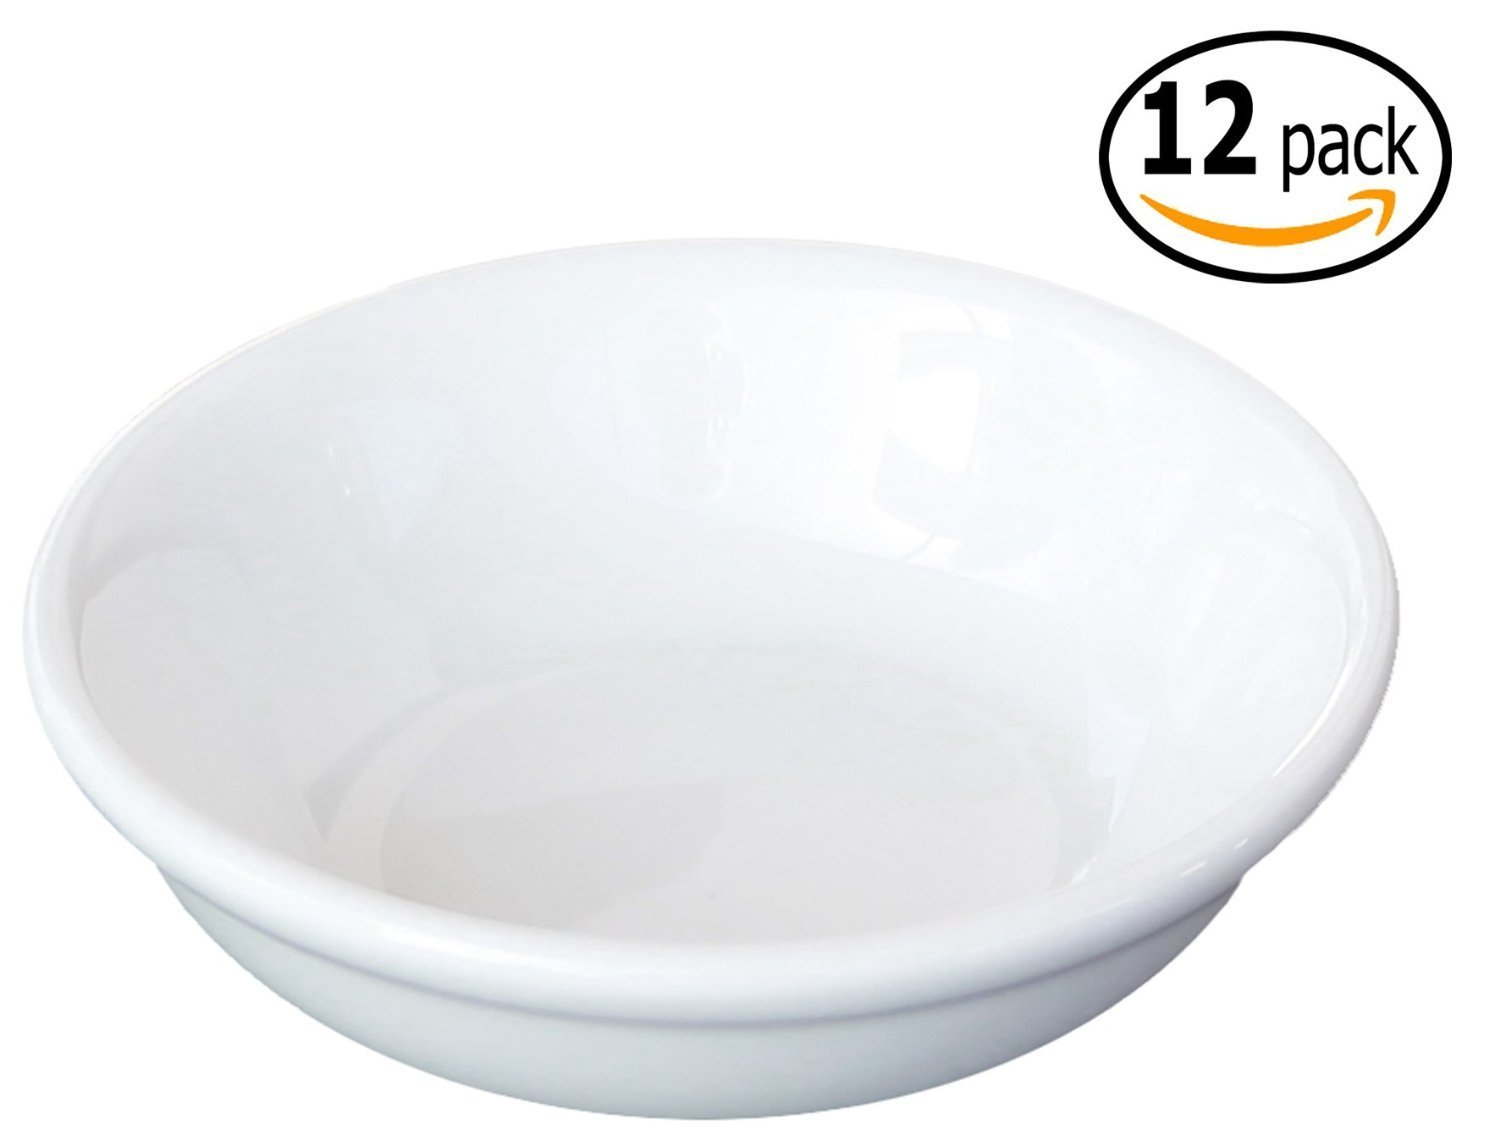 Ceramic Side Sauce Dish, 3-Inch, 2-Ounce, Set of 12 M.V. Trading FBA_201-31